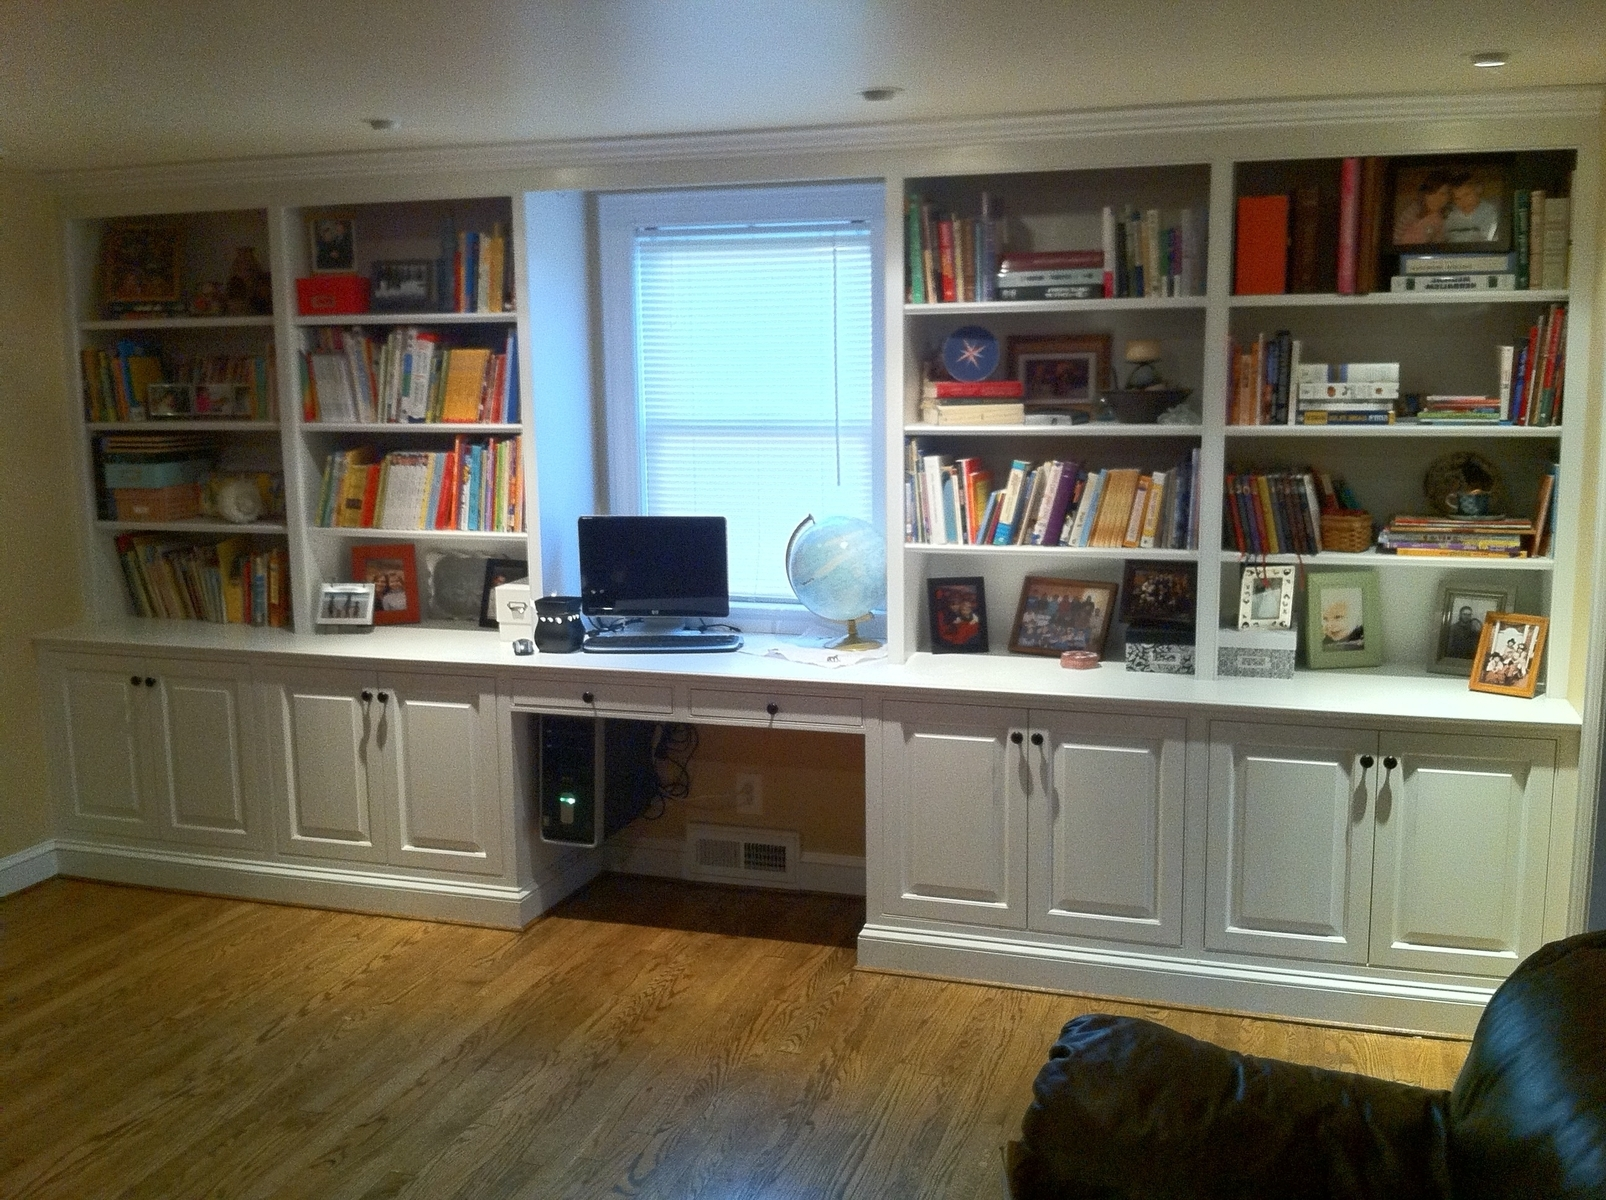 Study Bookshelves Intended For 2017 Large White Wooden Bookshelves With White Wooden Doors Plus Study (View 11 of 15)